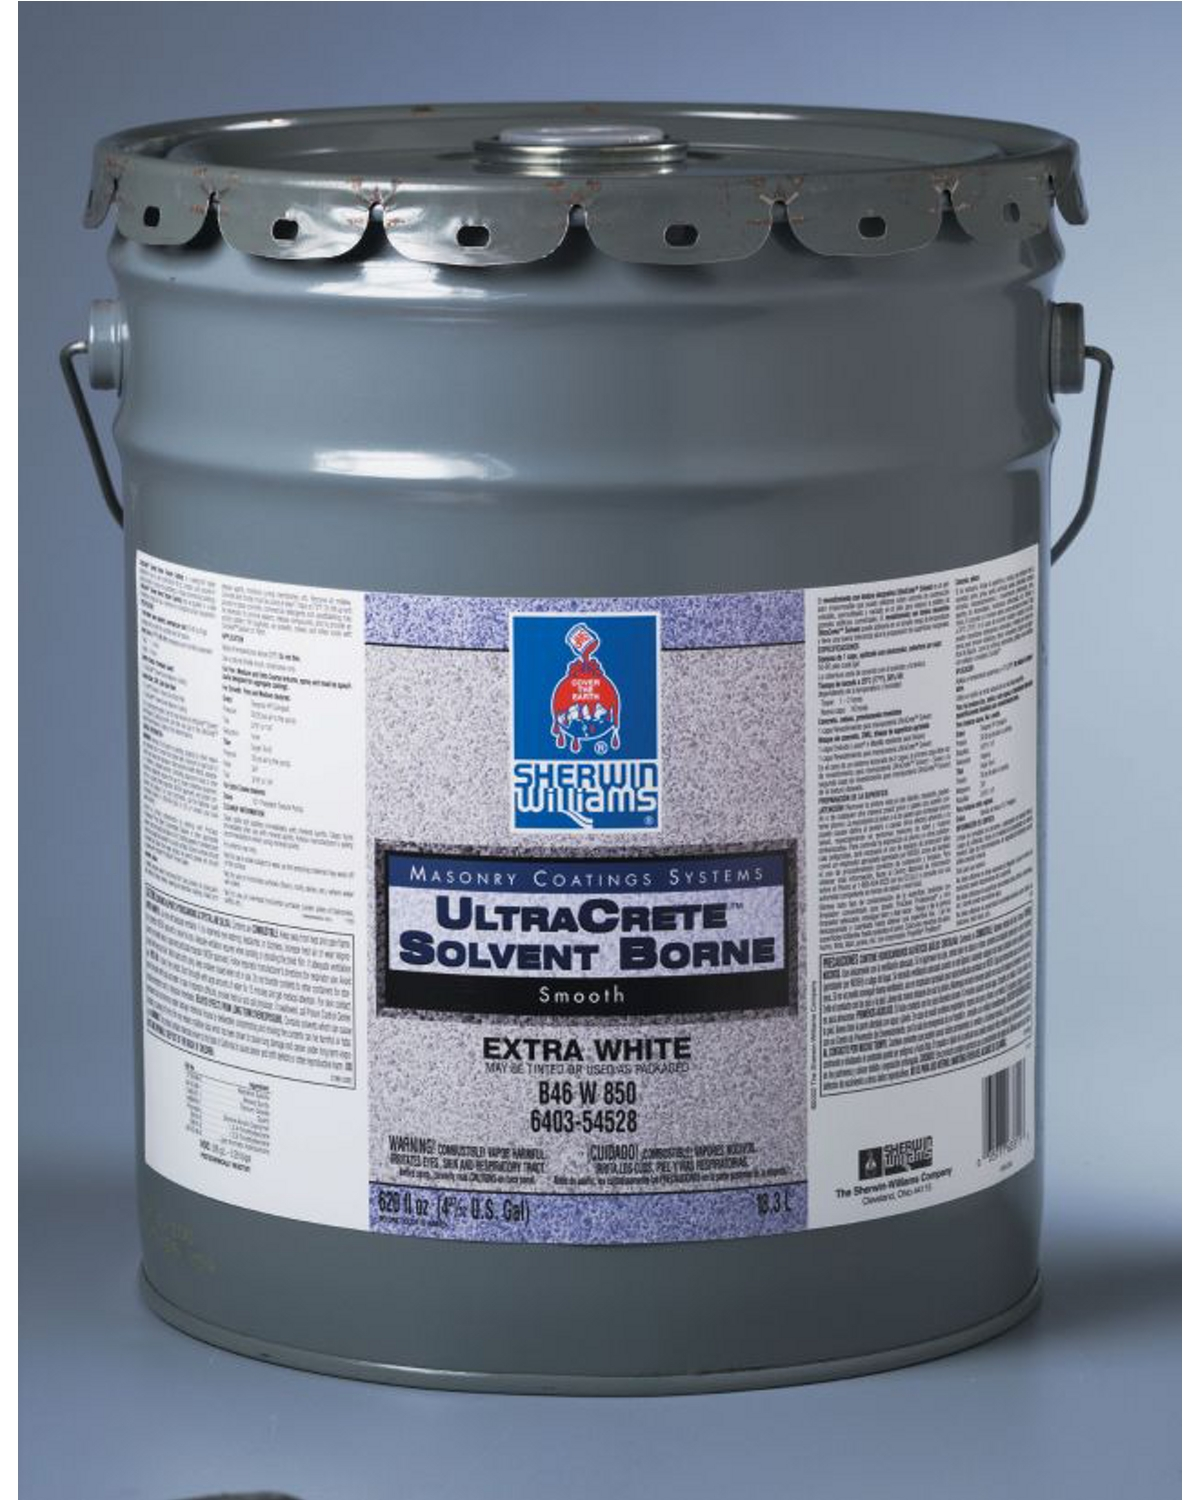 UltraCrete Solvent Borne Texture Coating